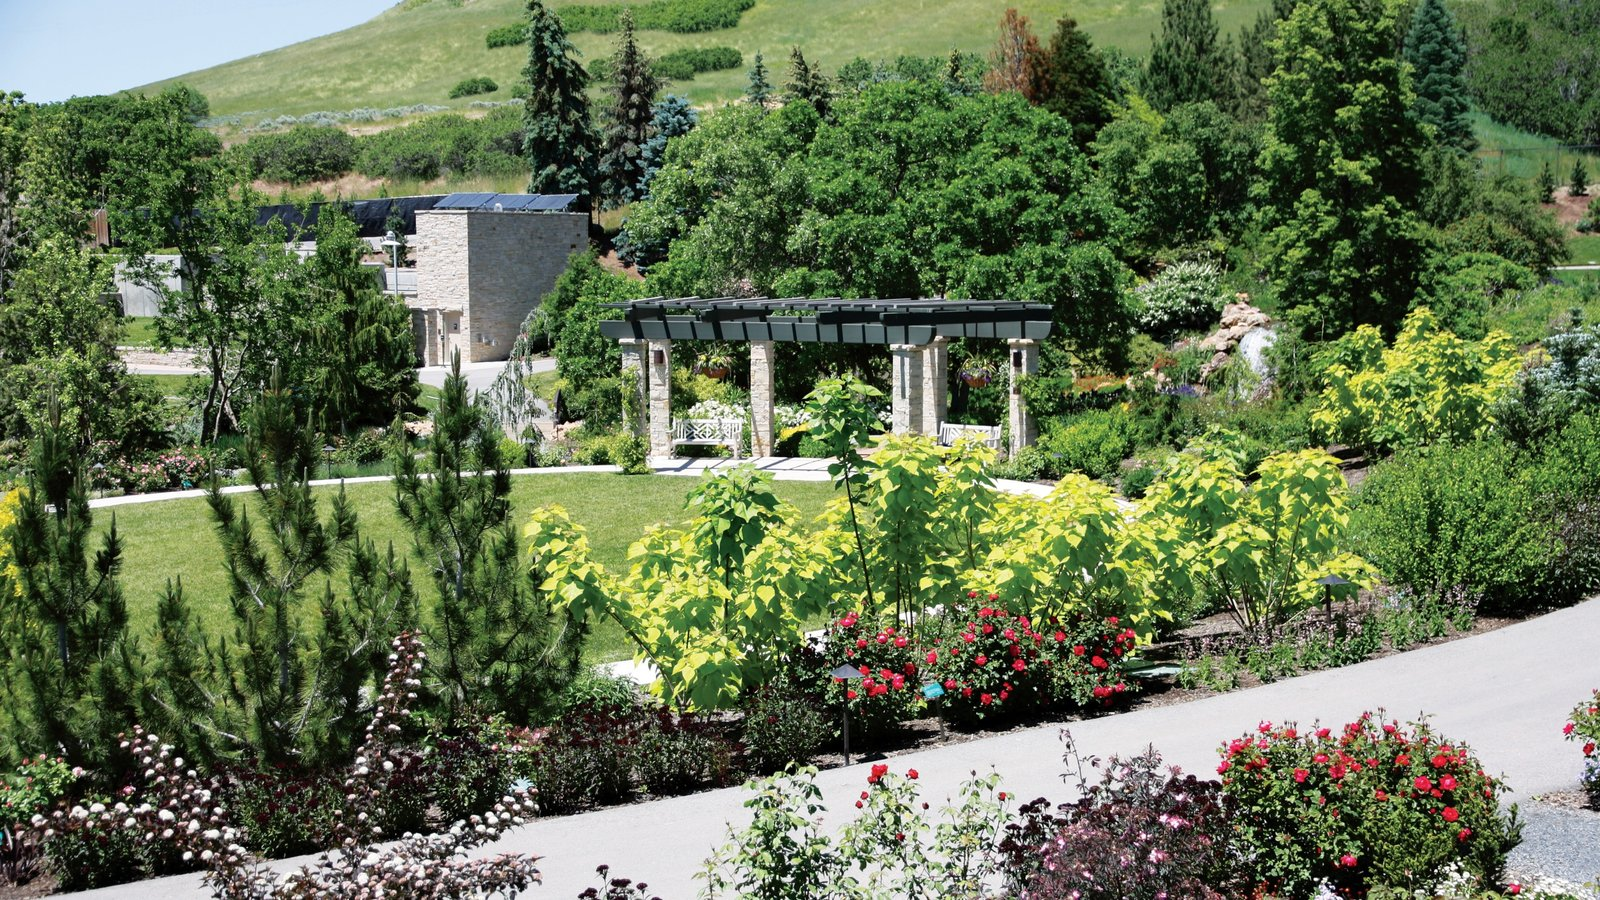 Red Butte Garden and Arboreteum showing a garden